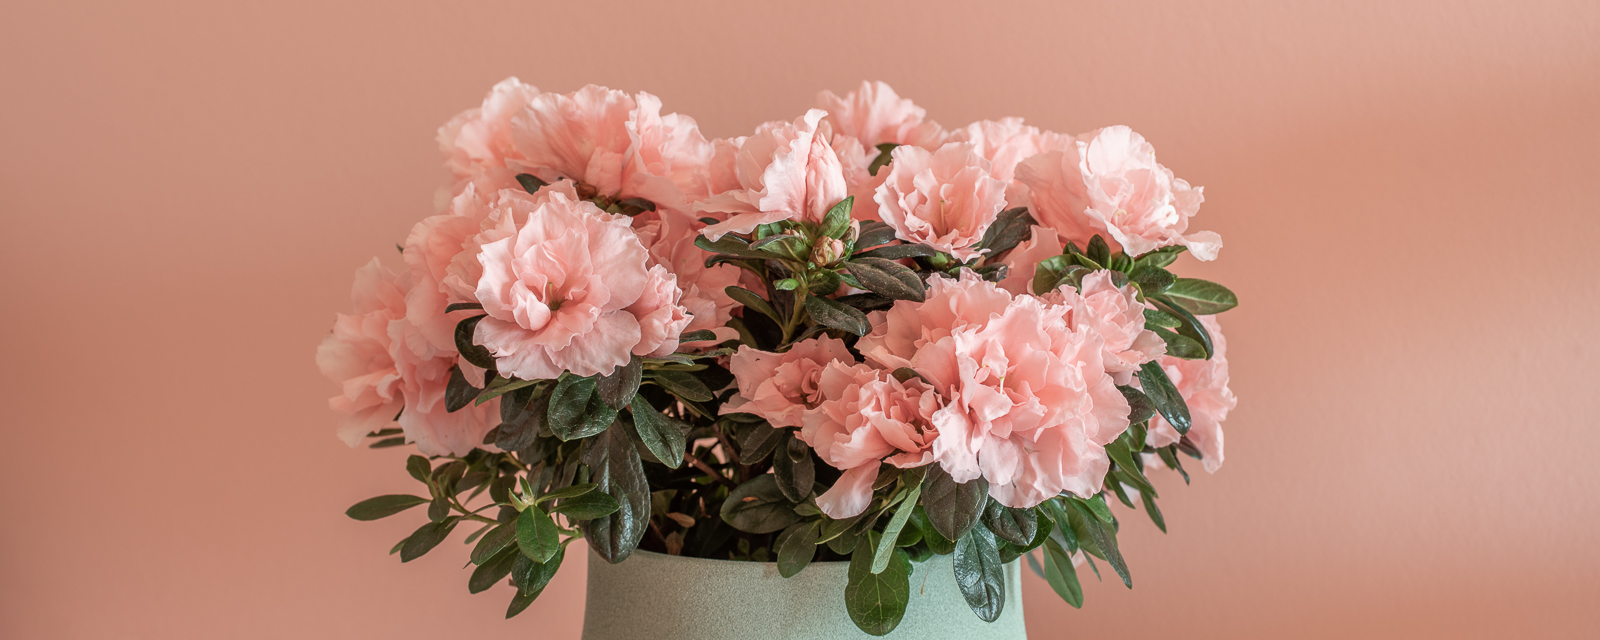 Why choose a bouquet when you can give something to last longer?